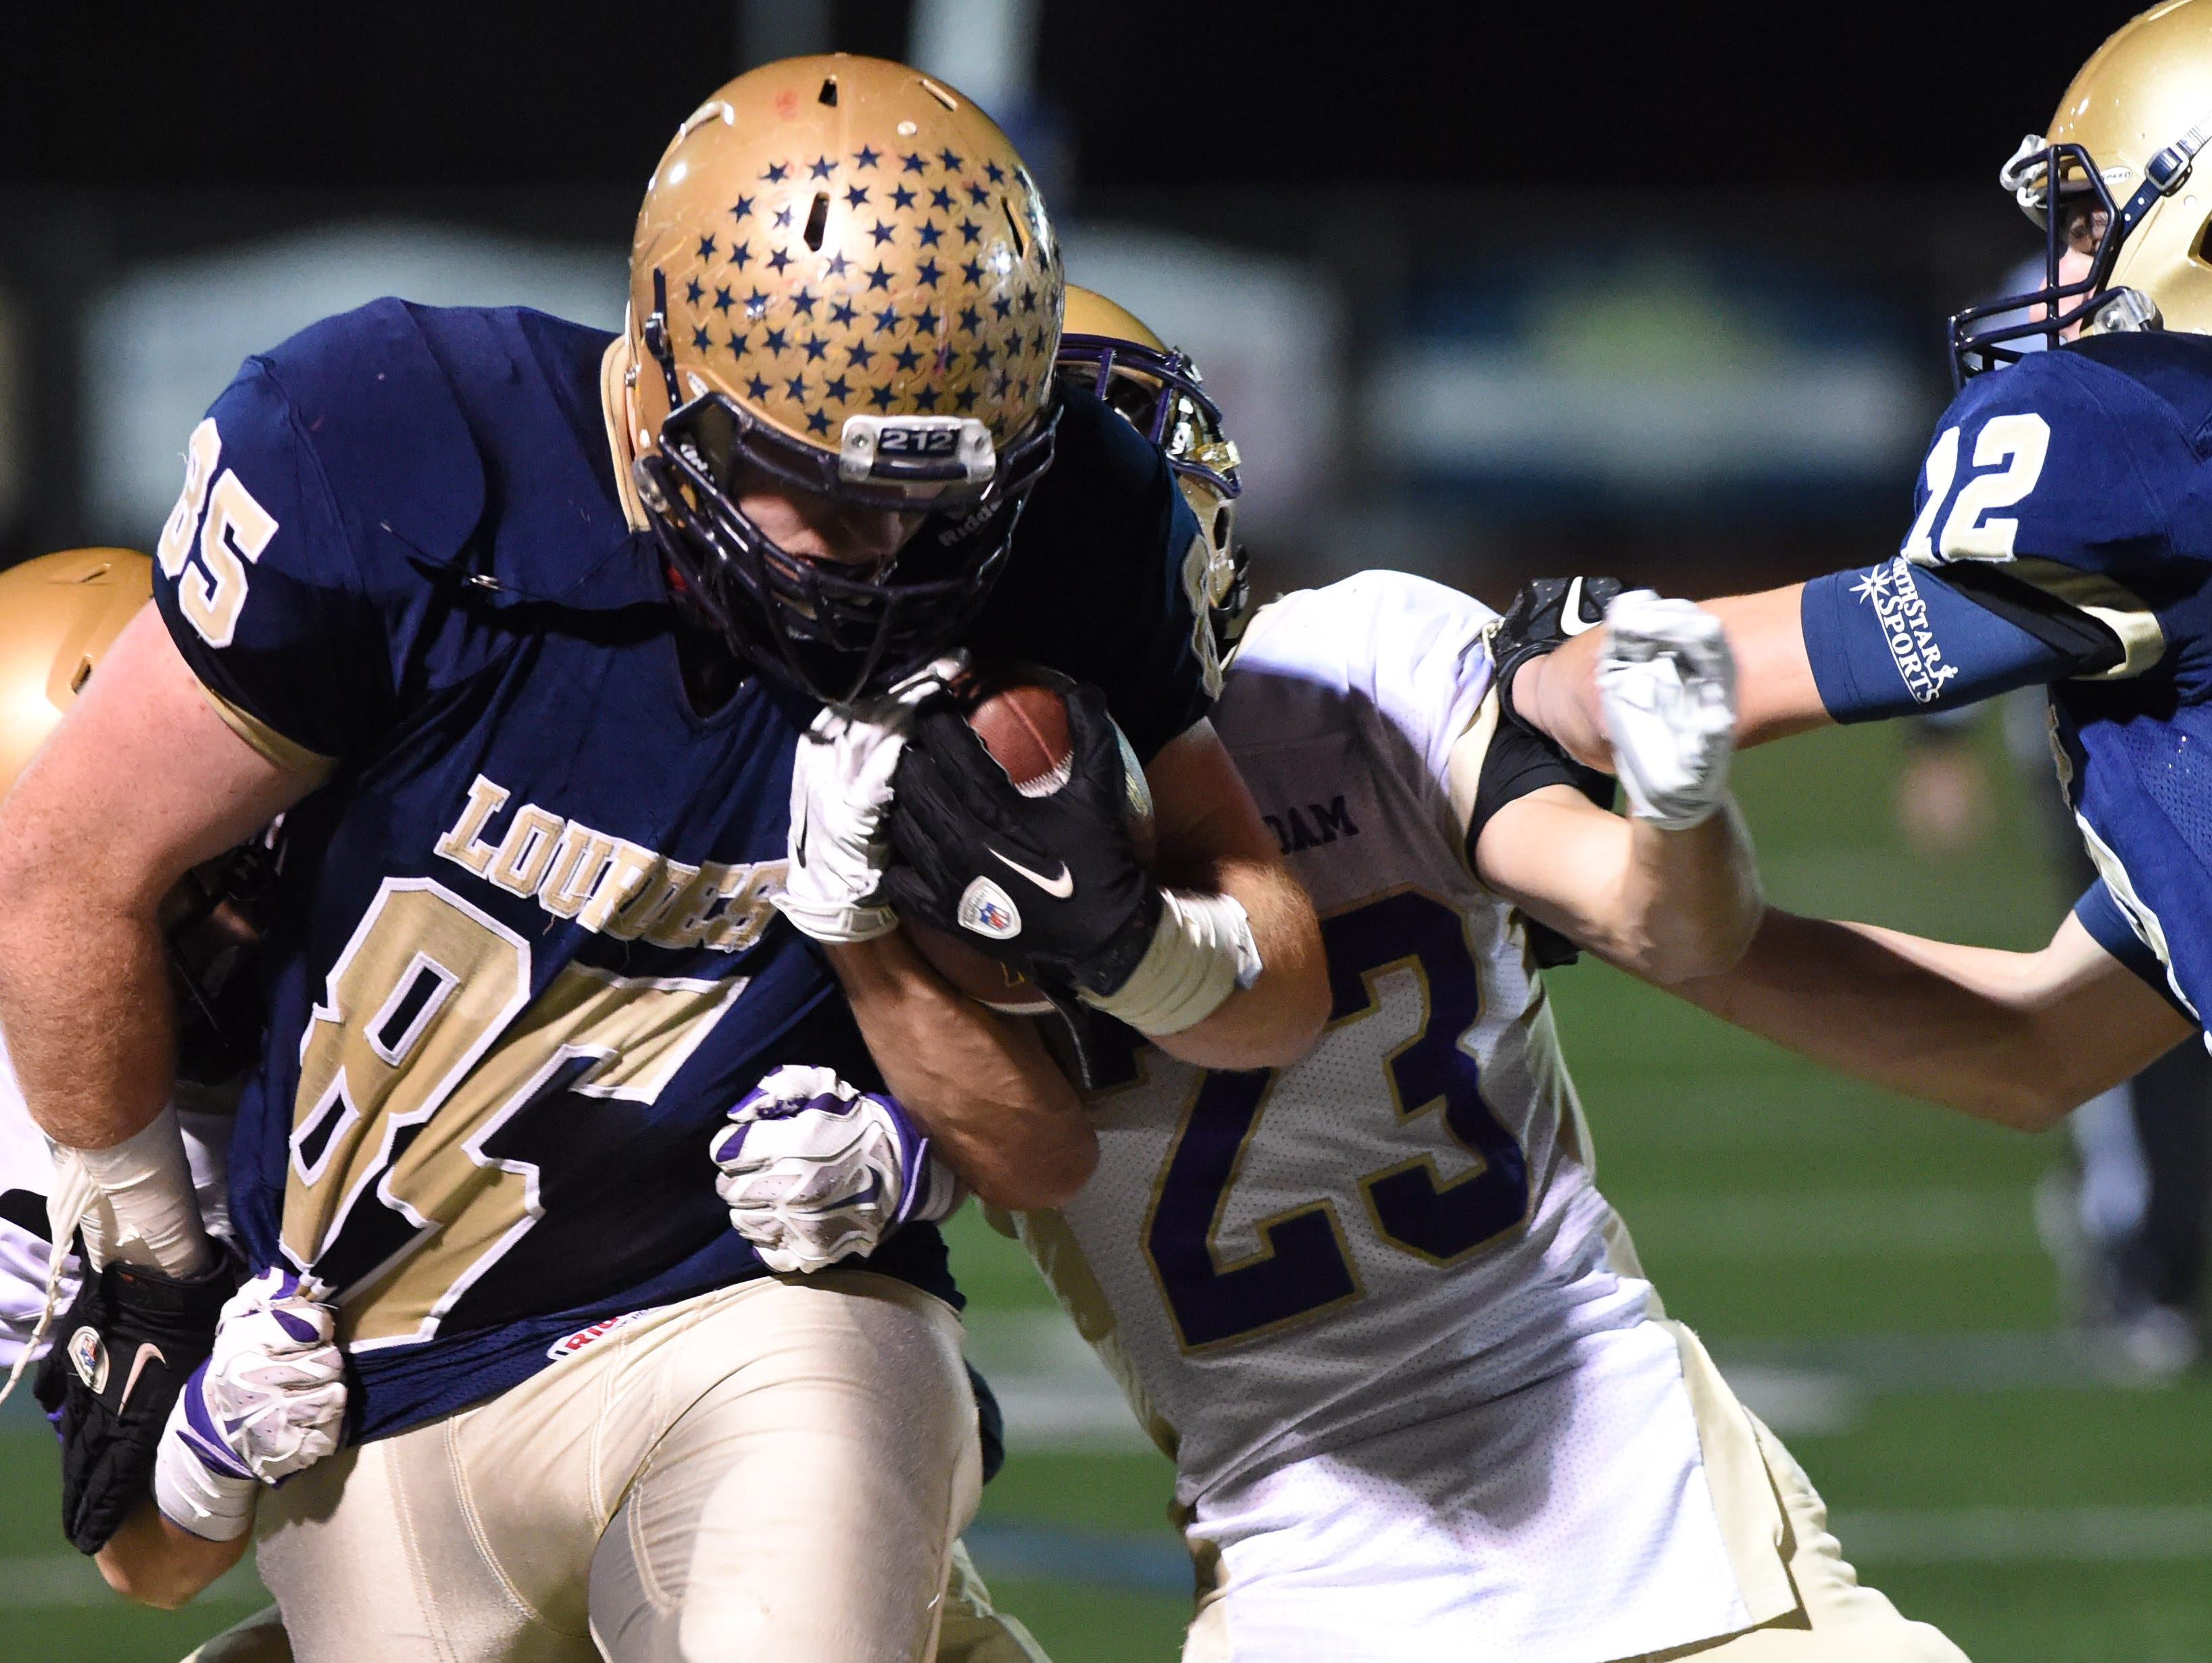 Lourdes' Chris Mulvey is taken down by Amsterdam's defense during the Class A semi final at Dietz Stadium.